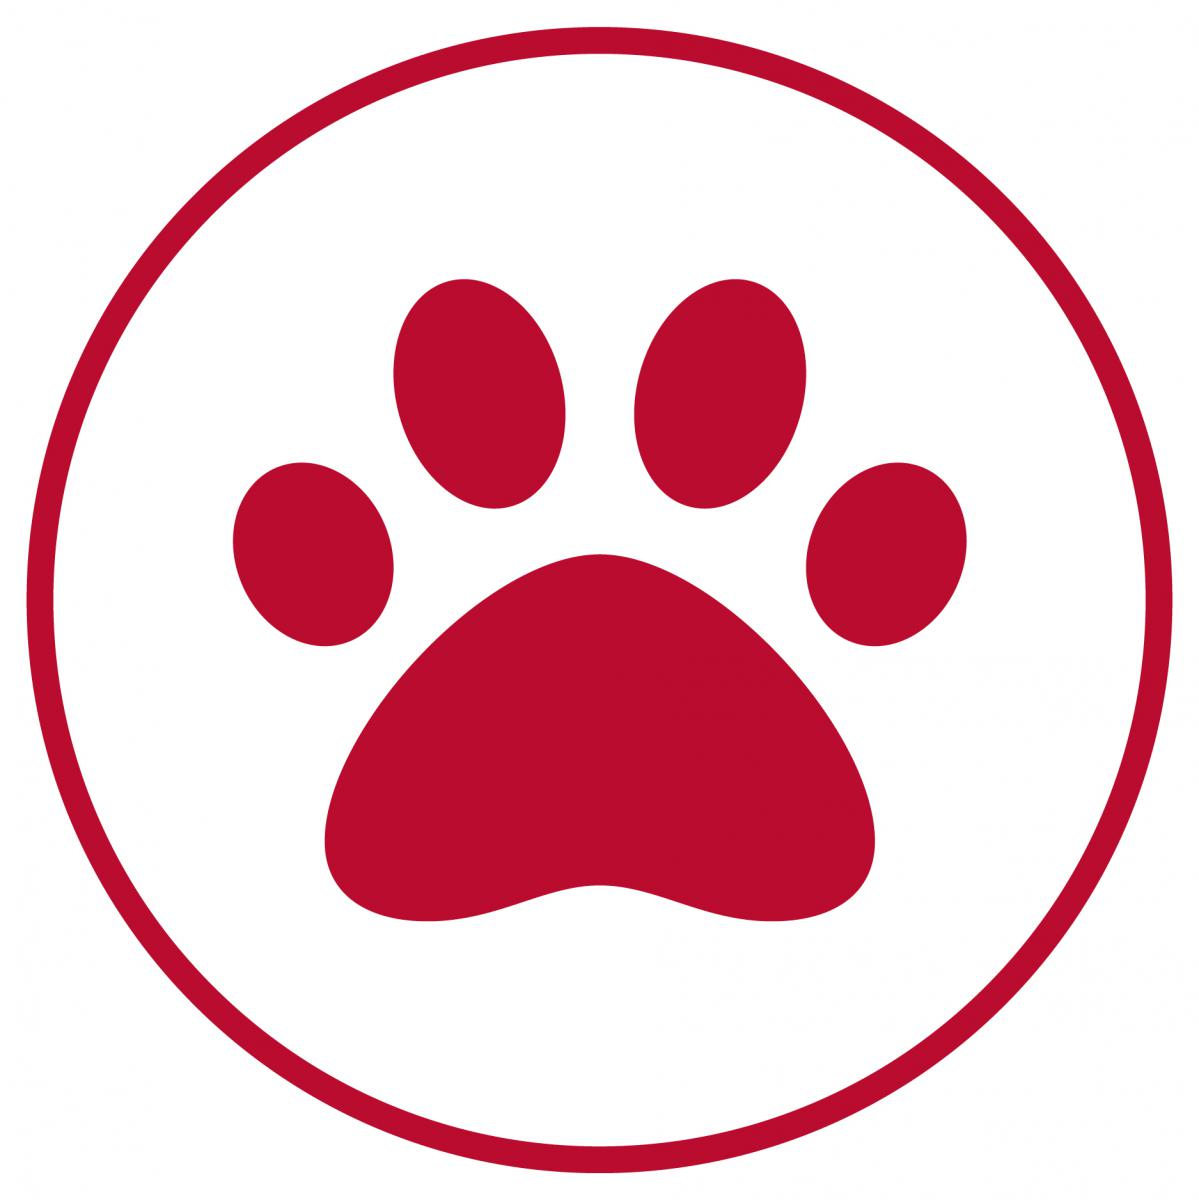 Red circle with a paw.